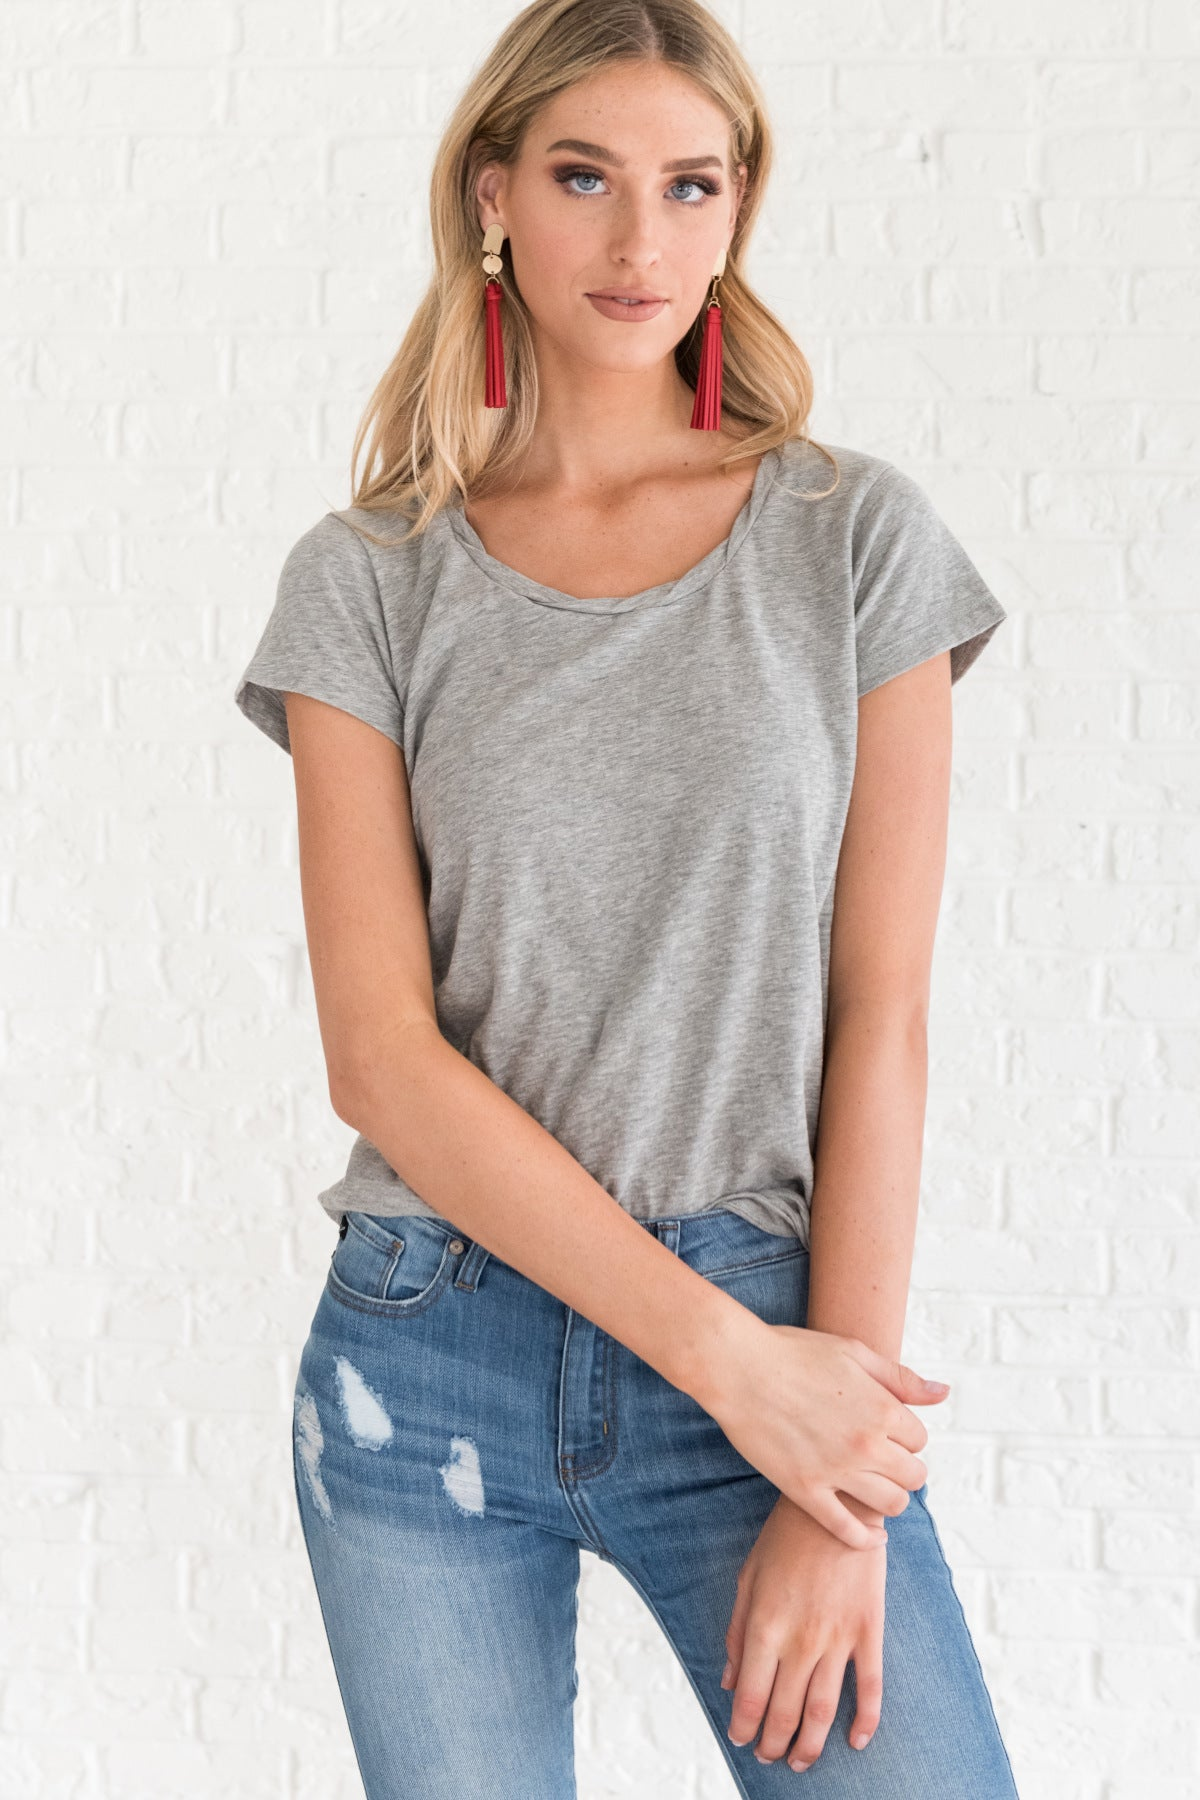 Gray Basic Casual T Shirts for Women